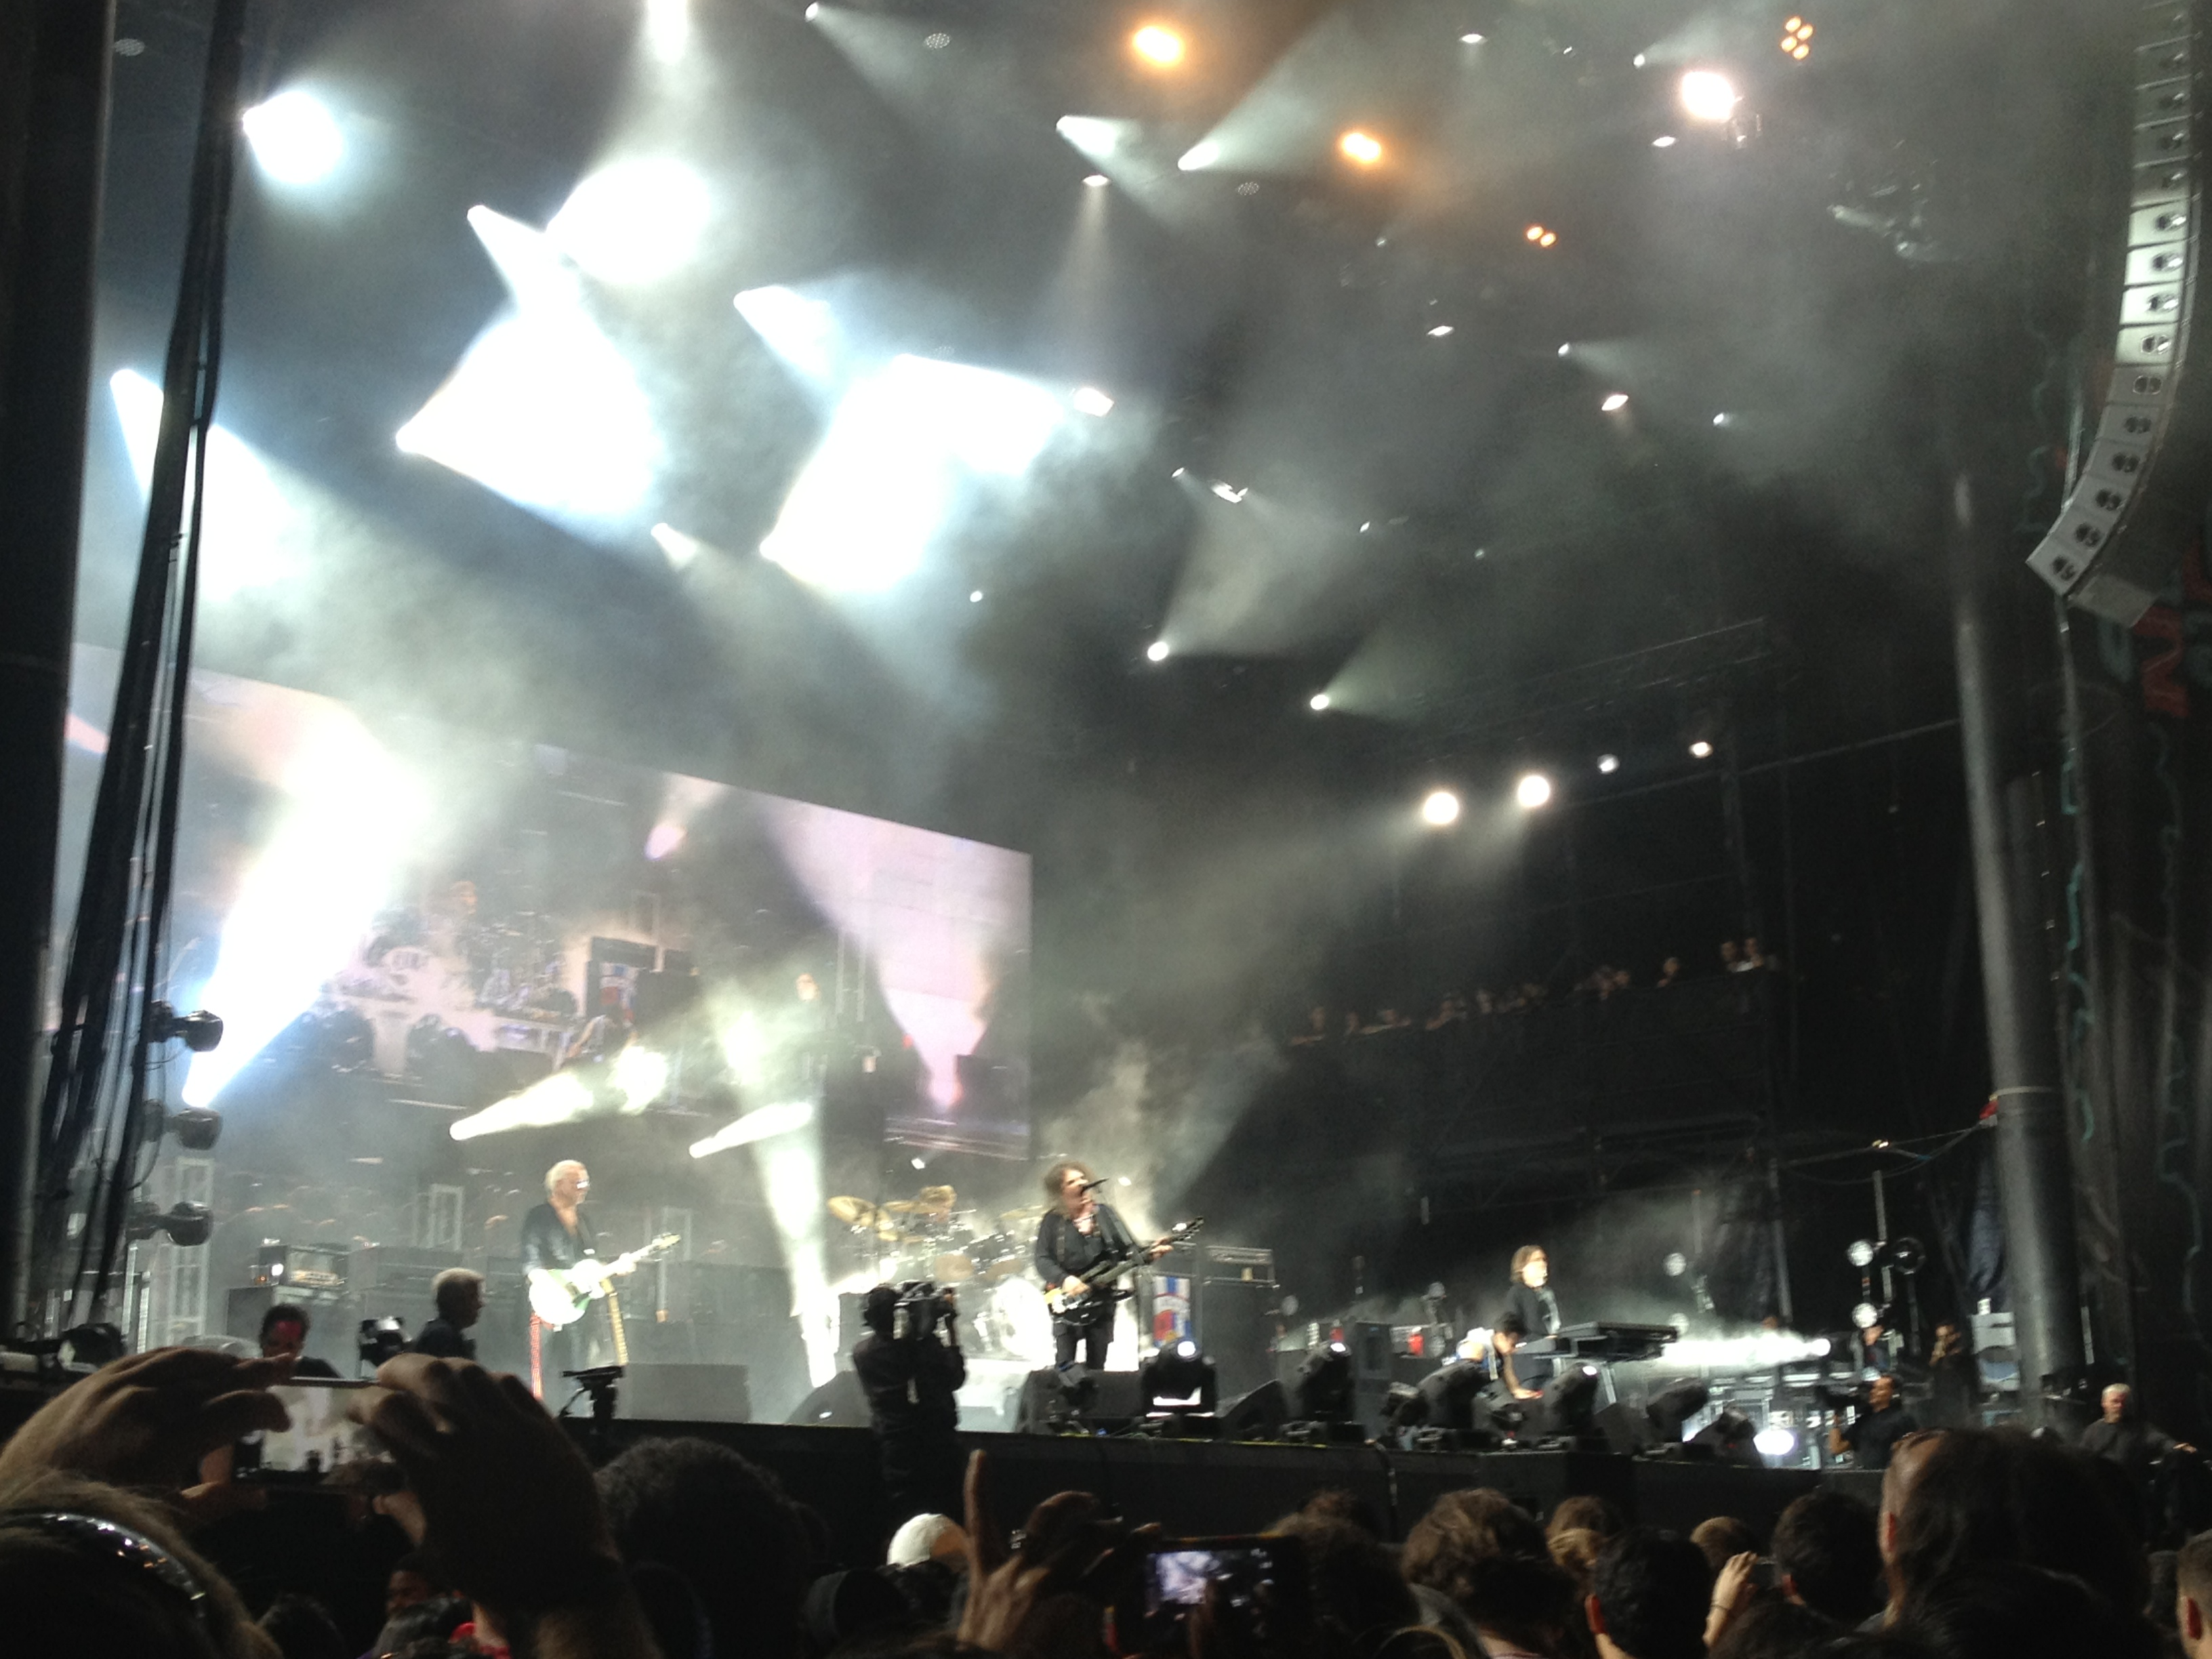 The Cure at Lollapalooza